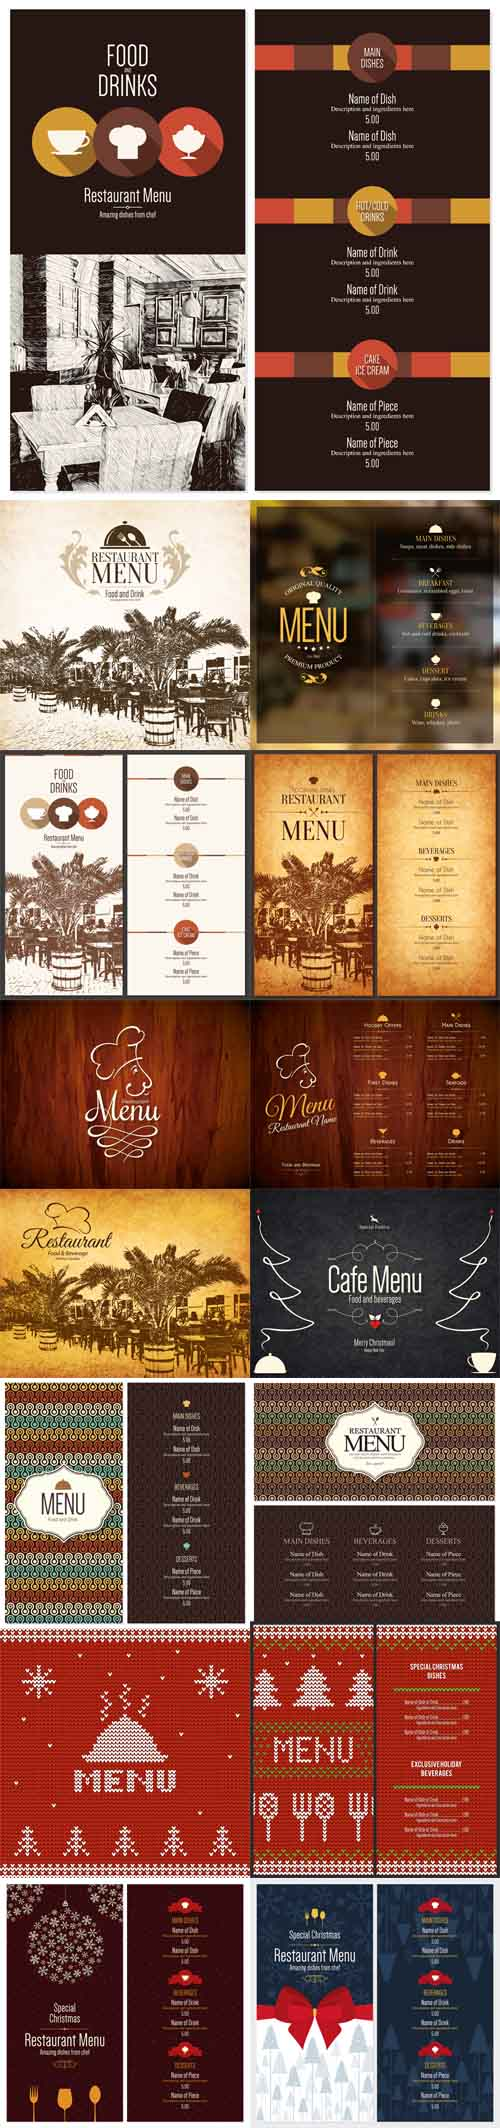 vector restaurant menu design brochure template for cafe coffee vector restaurant menu design brochure template for cafe coffee house restaurant bar